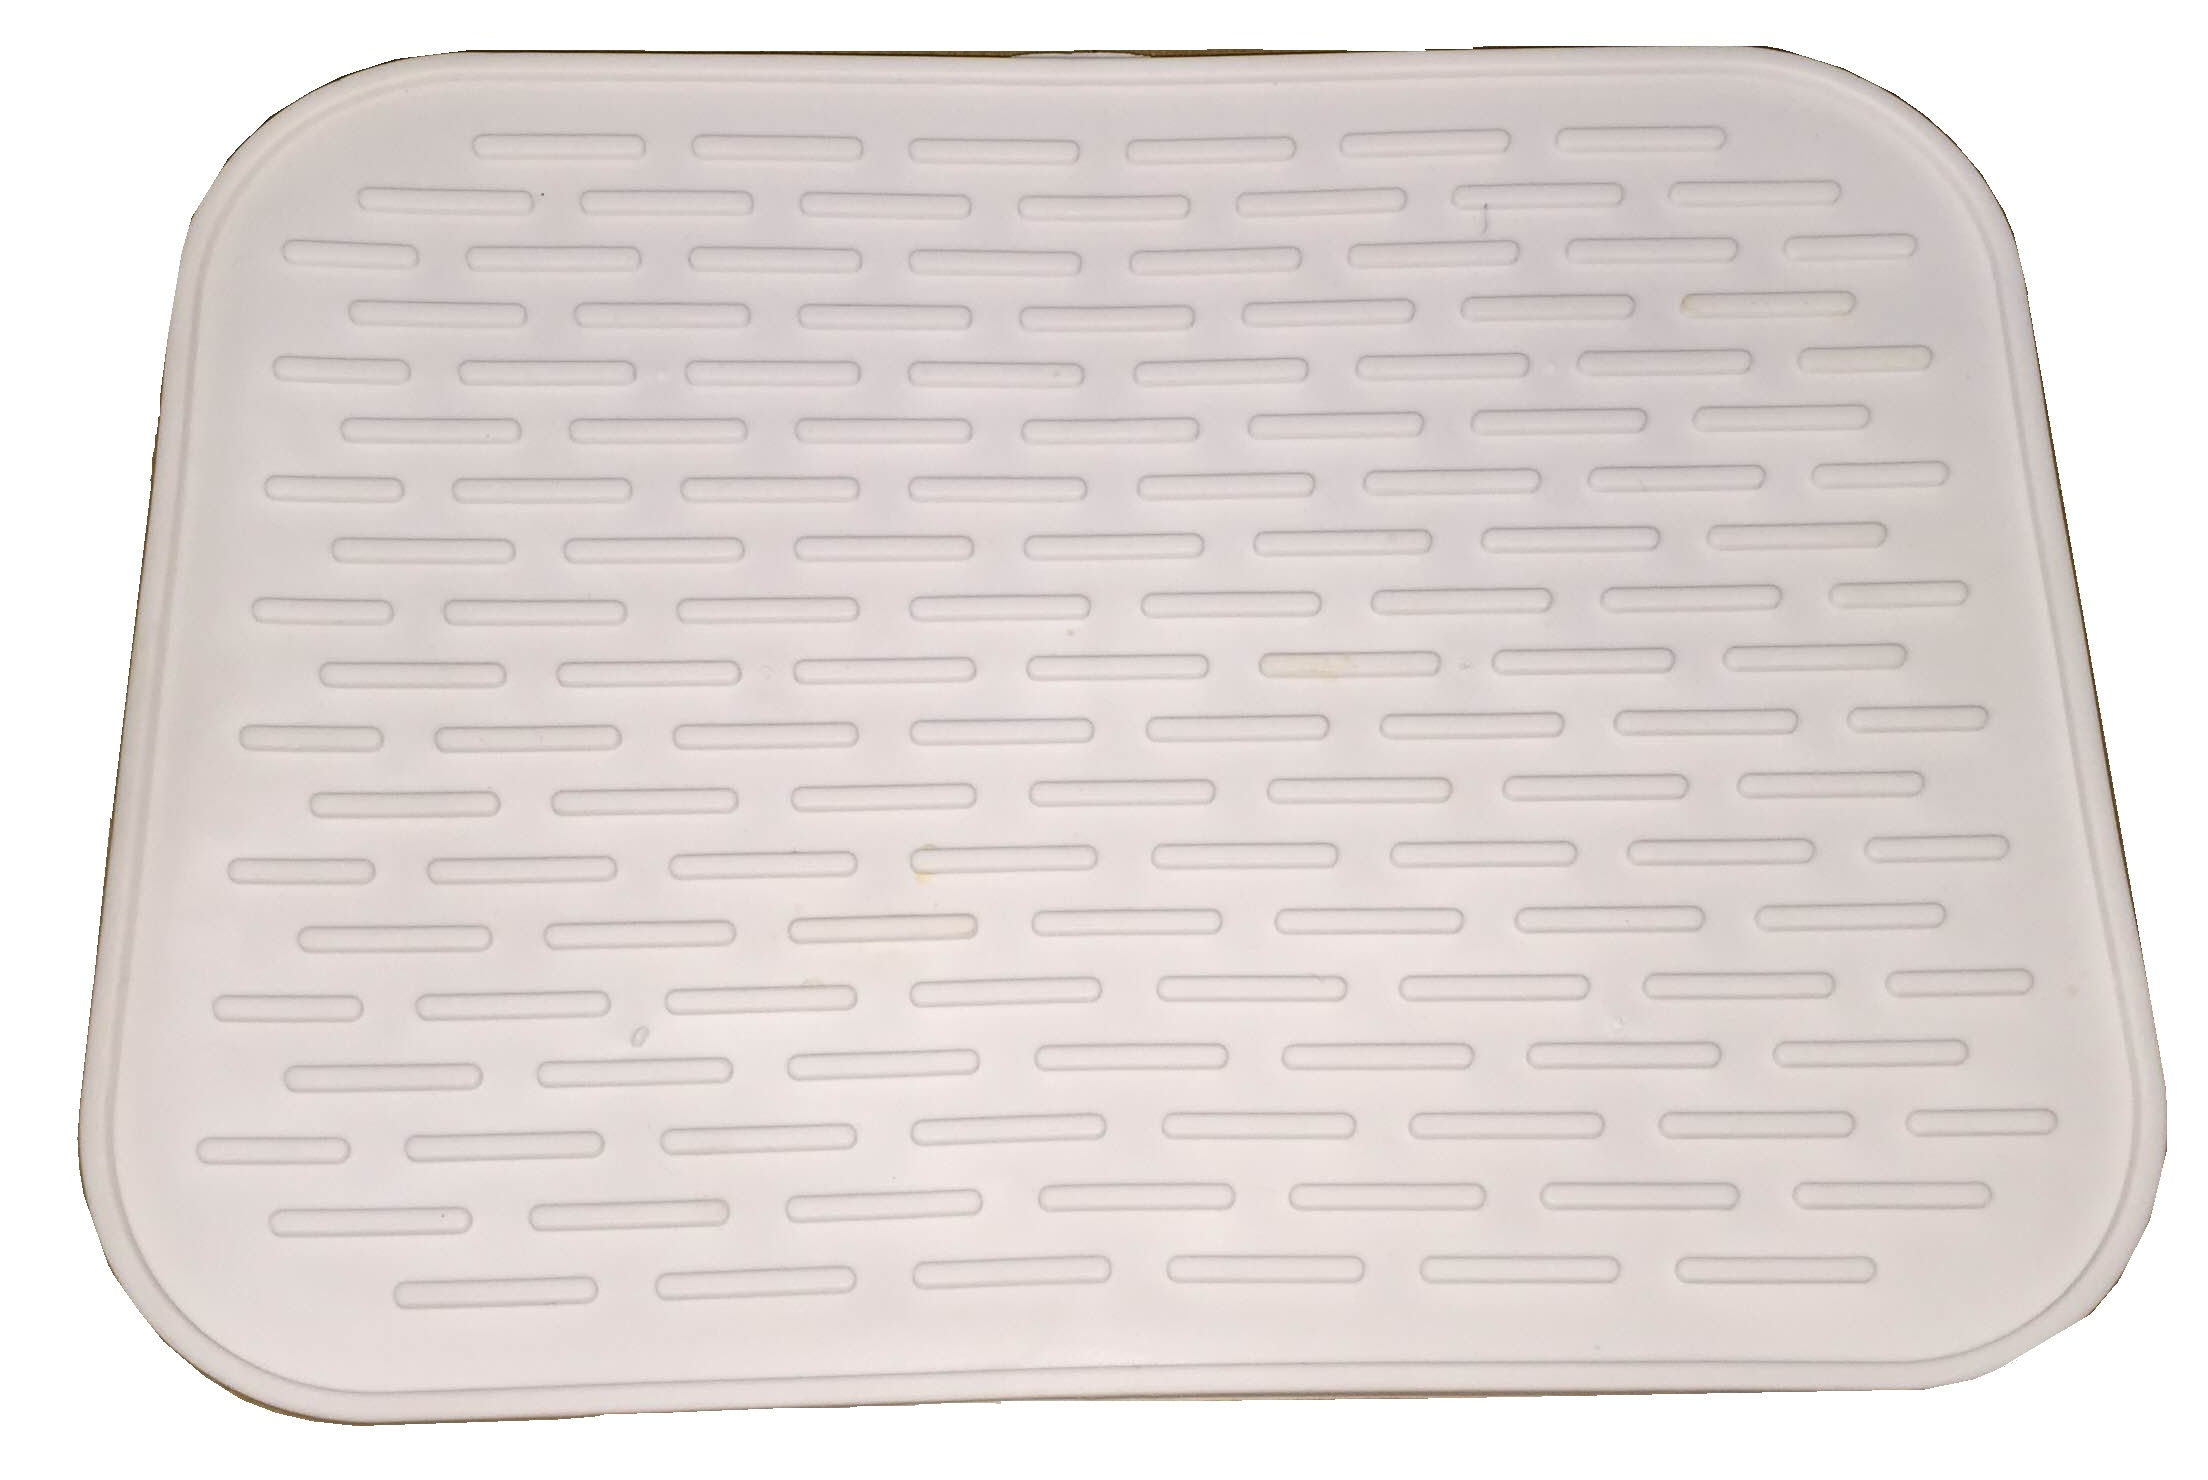 for l product silicone mats sticks heat baking dough pastry resistant rolling countertop sheet with measures toaster oven pegzos slip in to non mat conversions